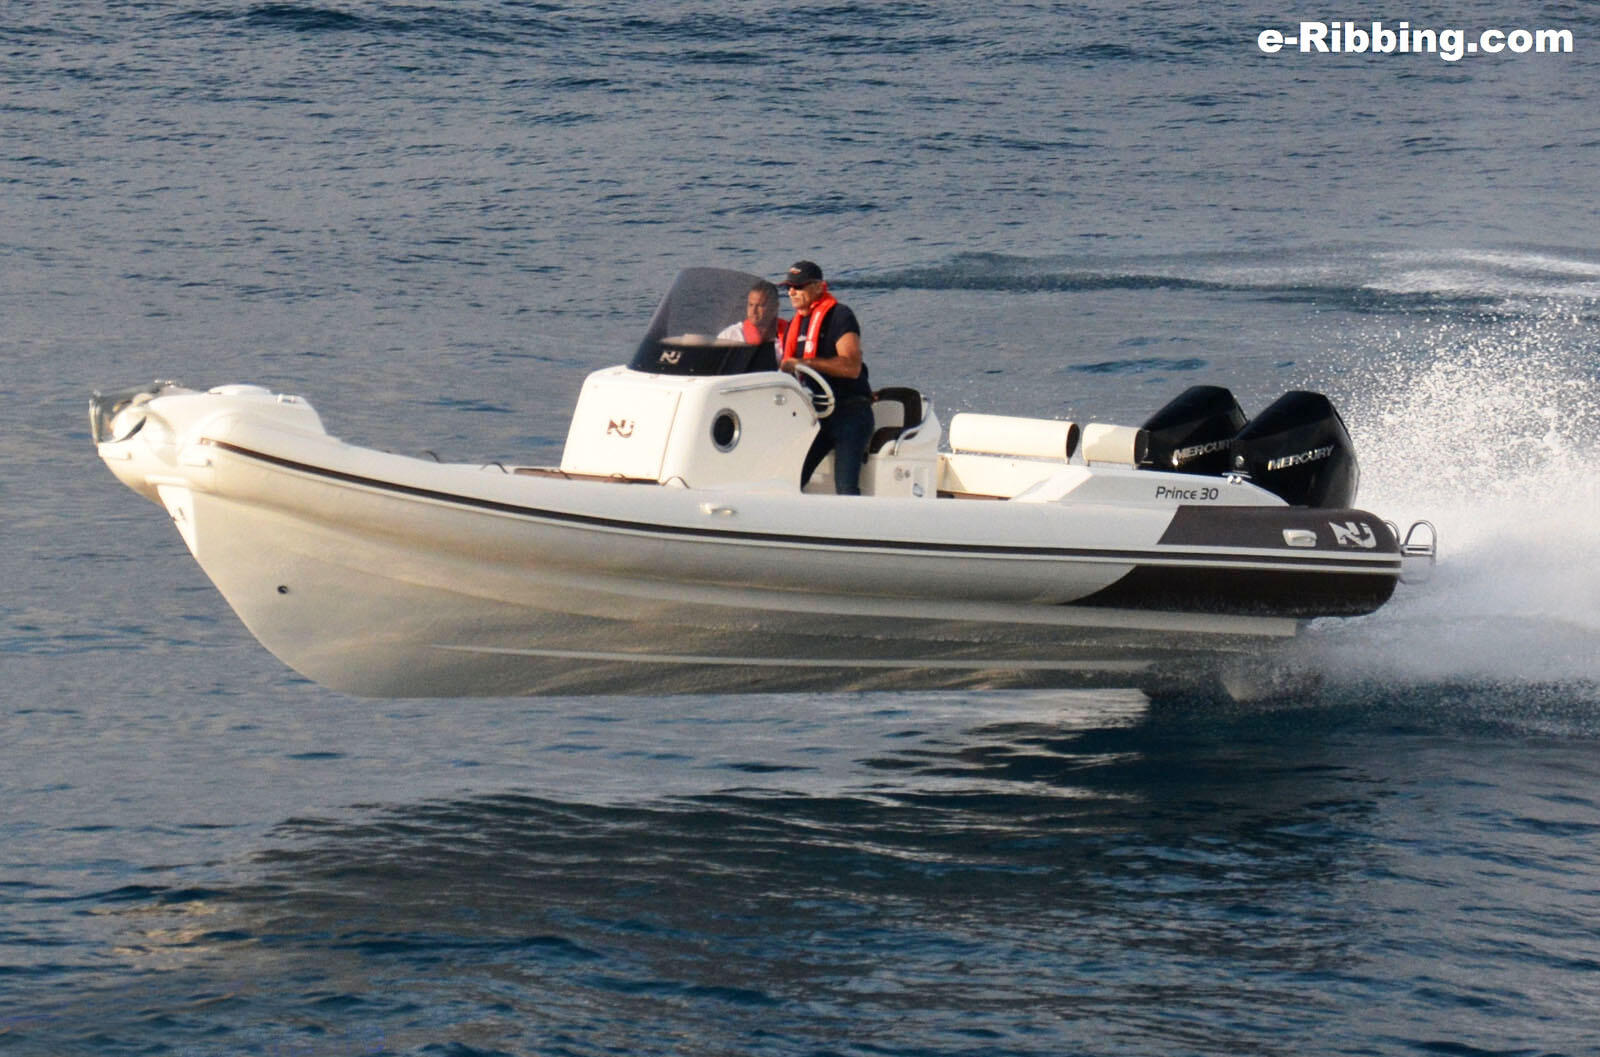 Nuova Jolly Prince 30 – Twin 250hp 4.6L V8 Verados